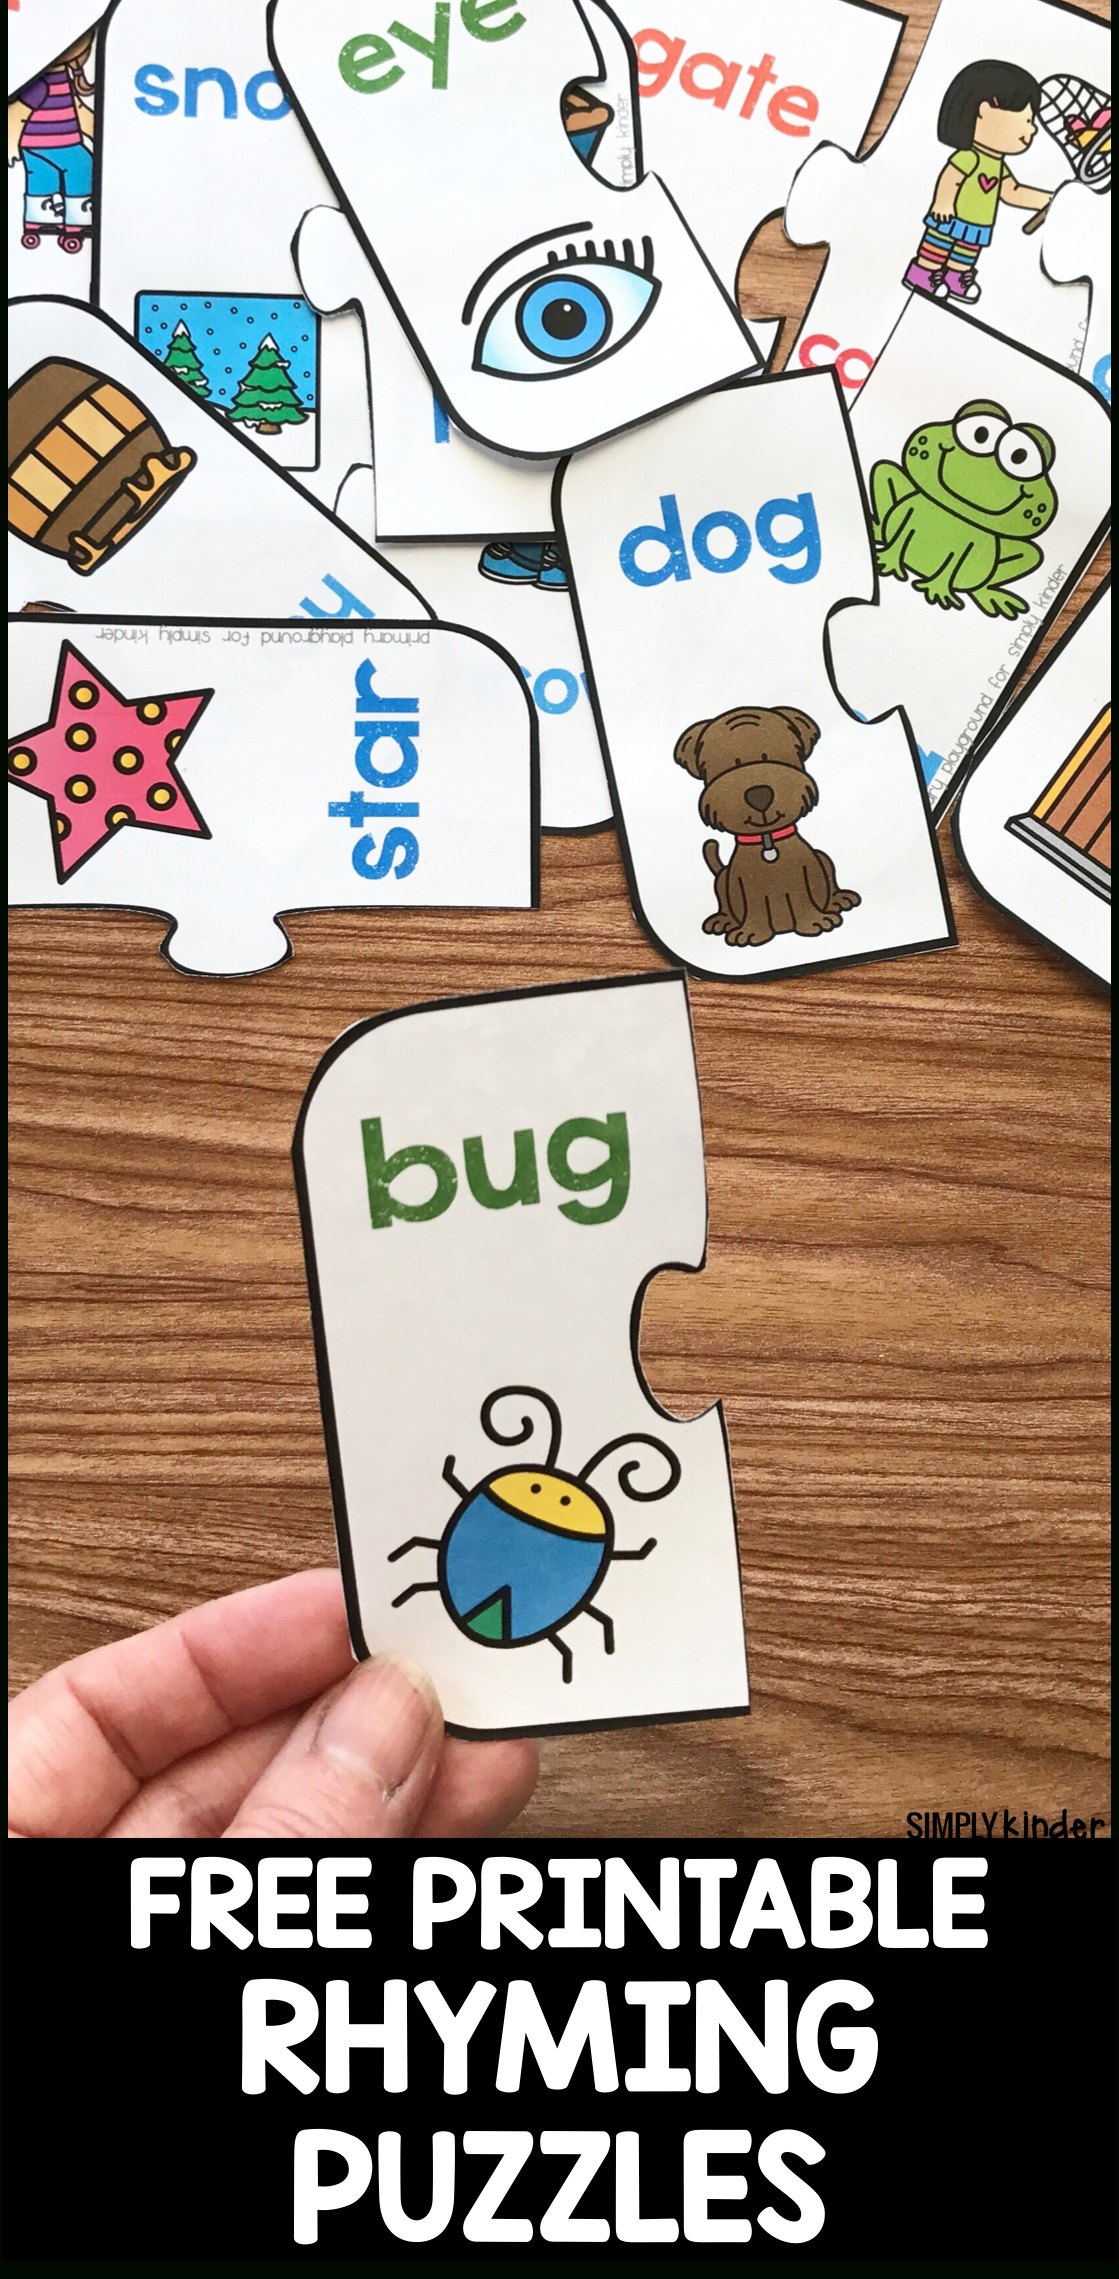 Free Printable Rhyming Puzzles - Simply Kinder - Printable Puzzles Preschool